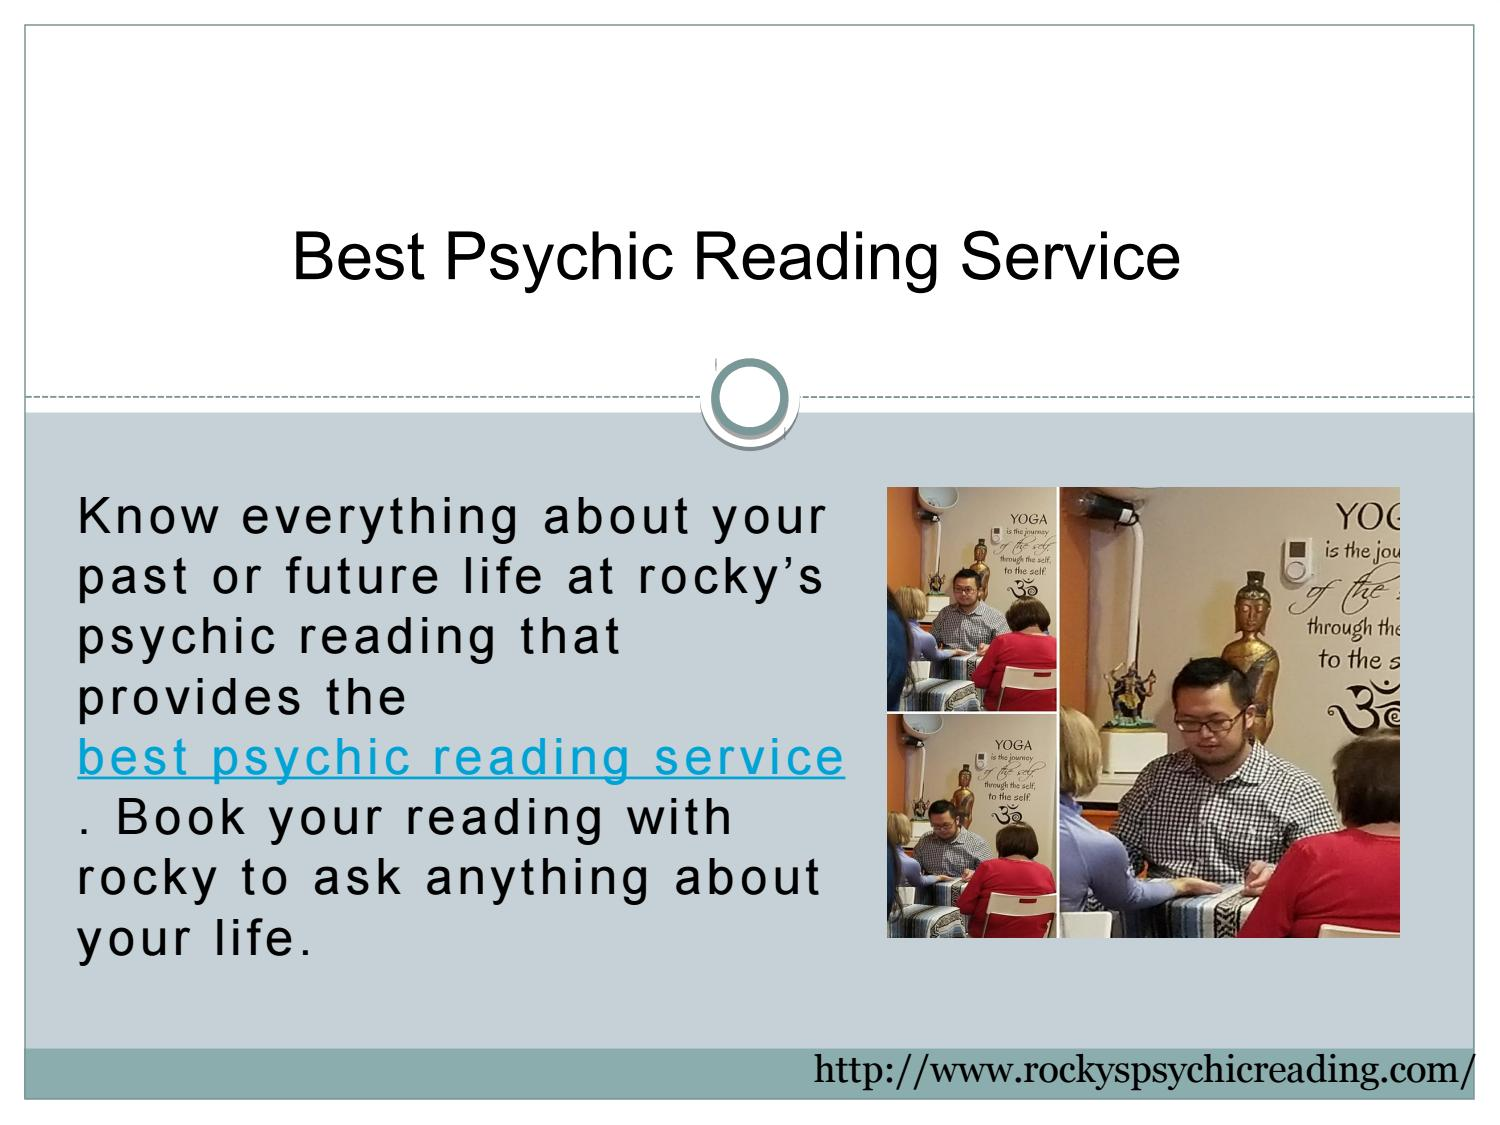 Psychic Reading Service by Rocky's Psychic Reading - issuu